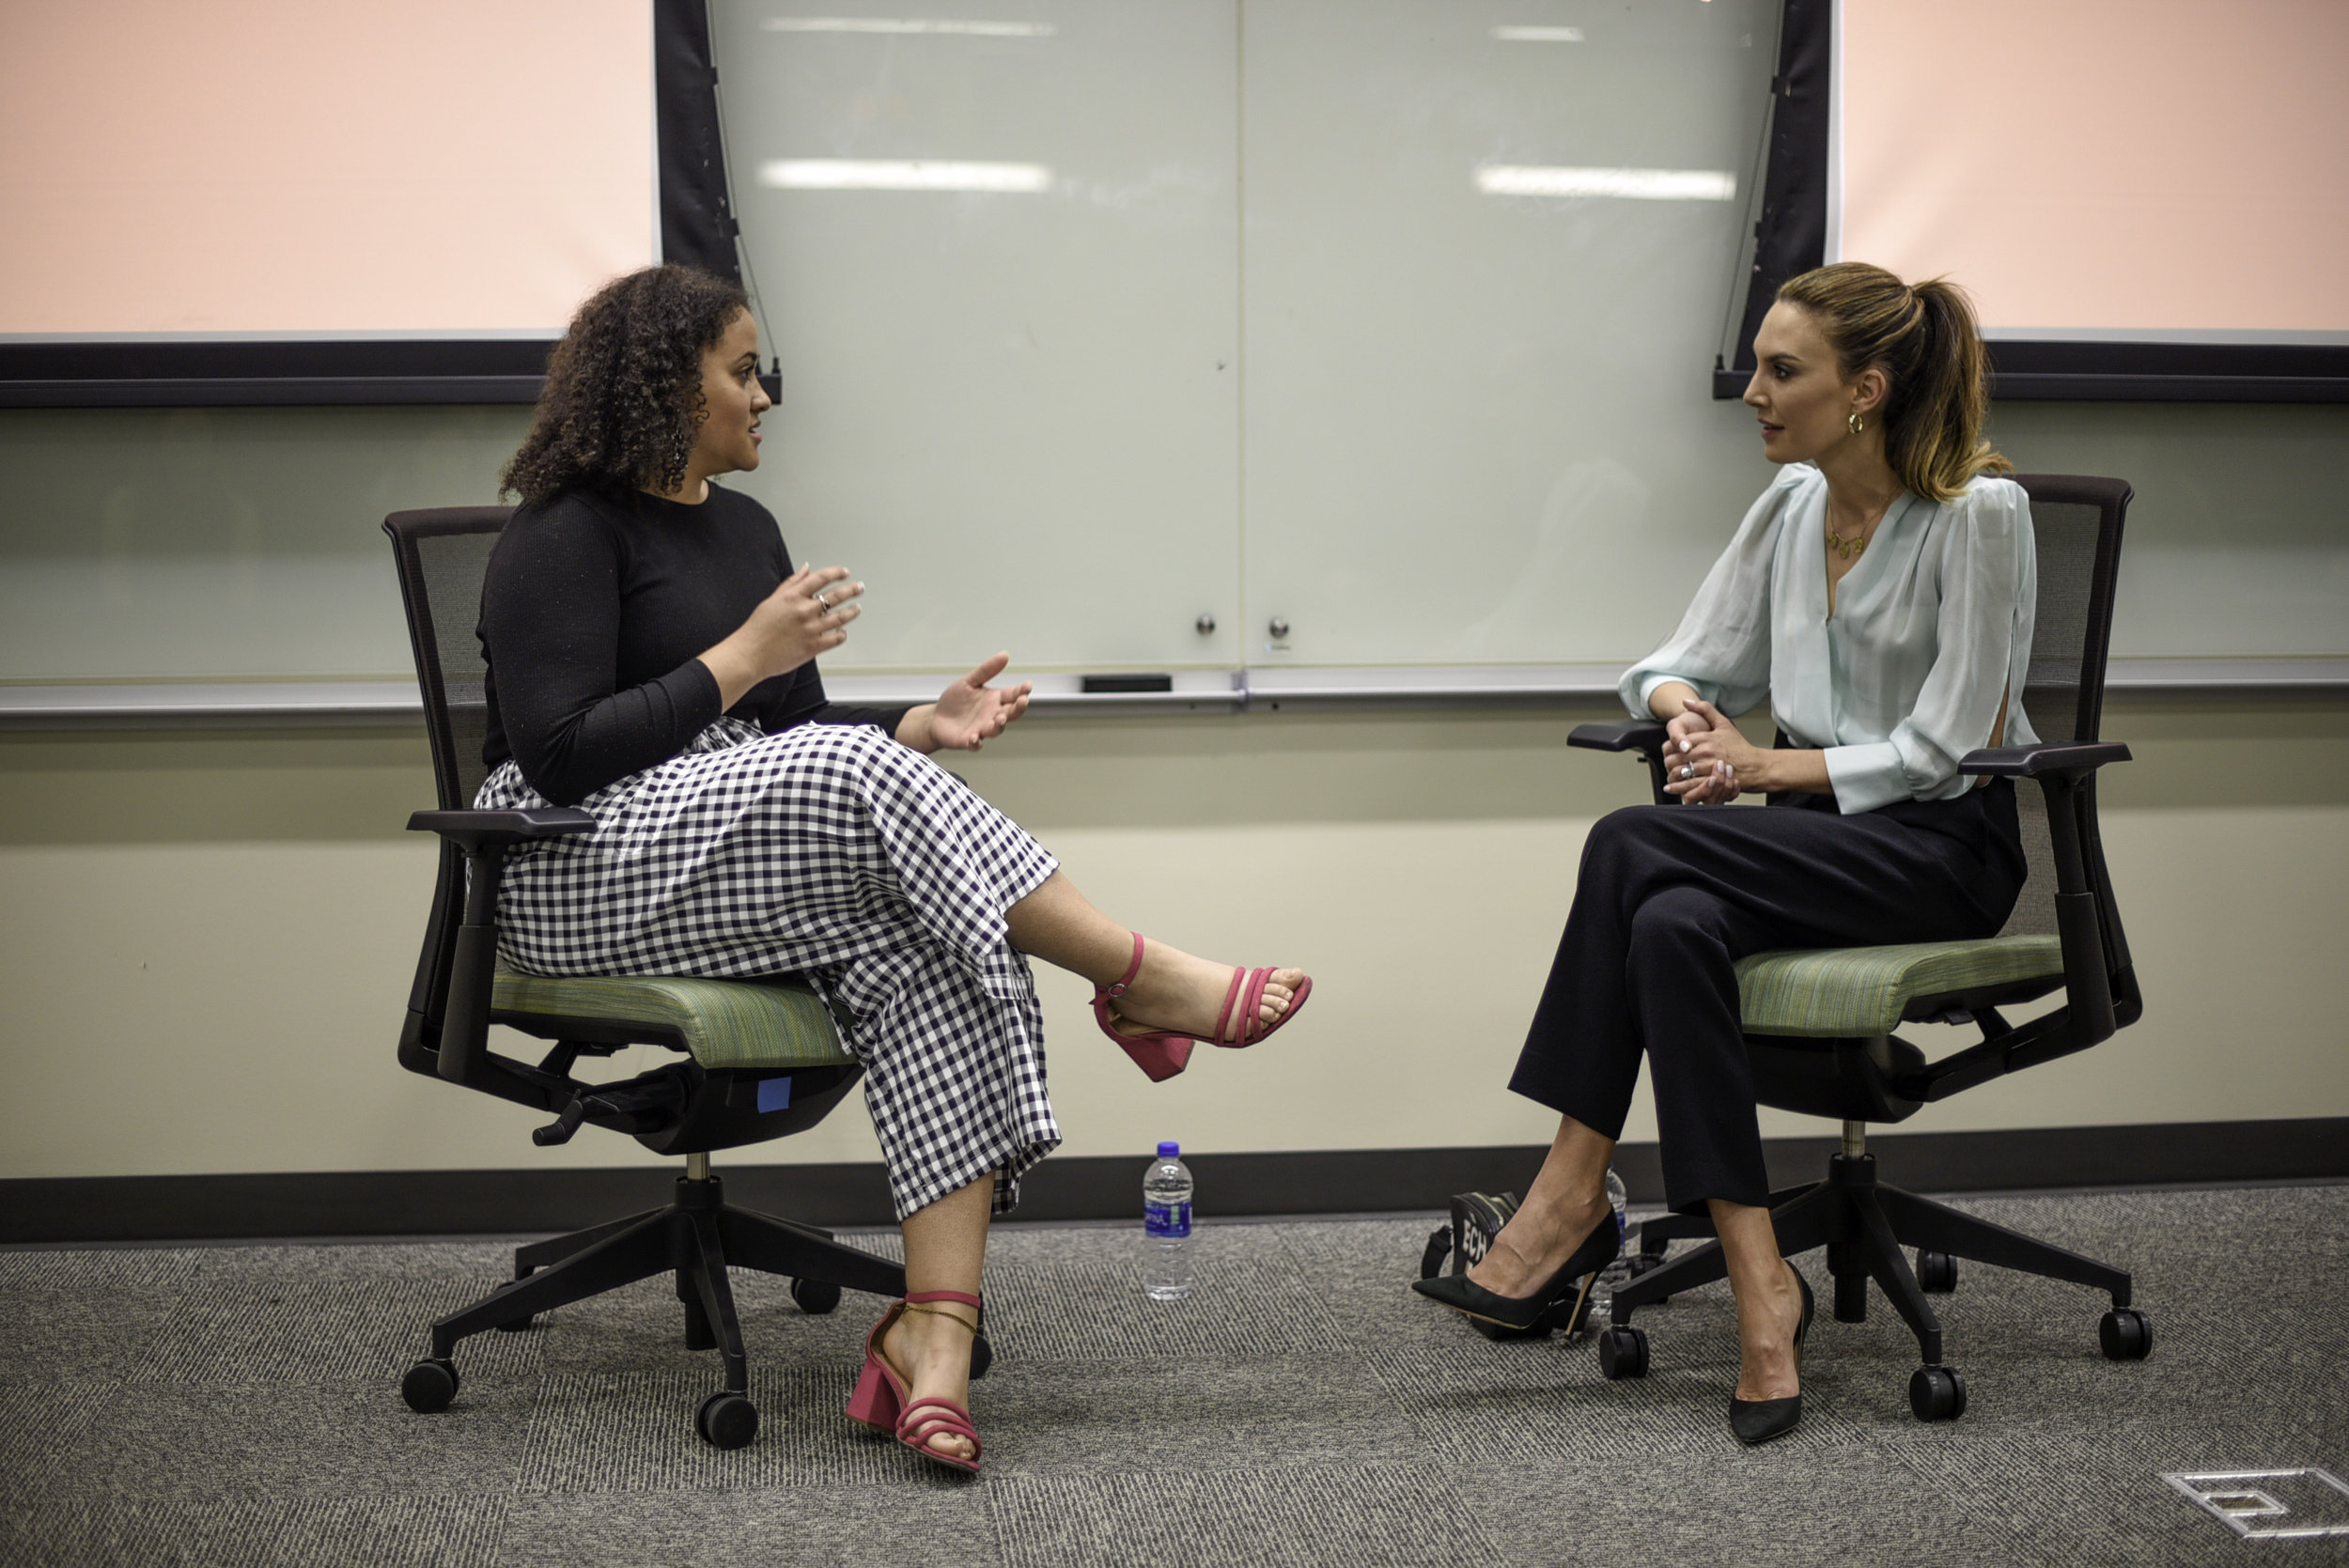 Jacqui Briddell , ORANGE Magazine's managing editor, interviews UT alumna Elizabeth Chambers Hammer at the Belo Center for New Media.